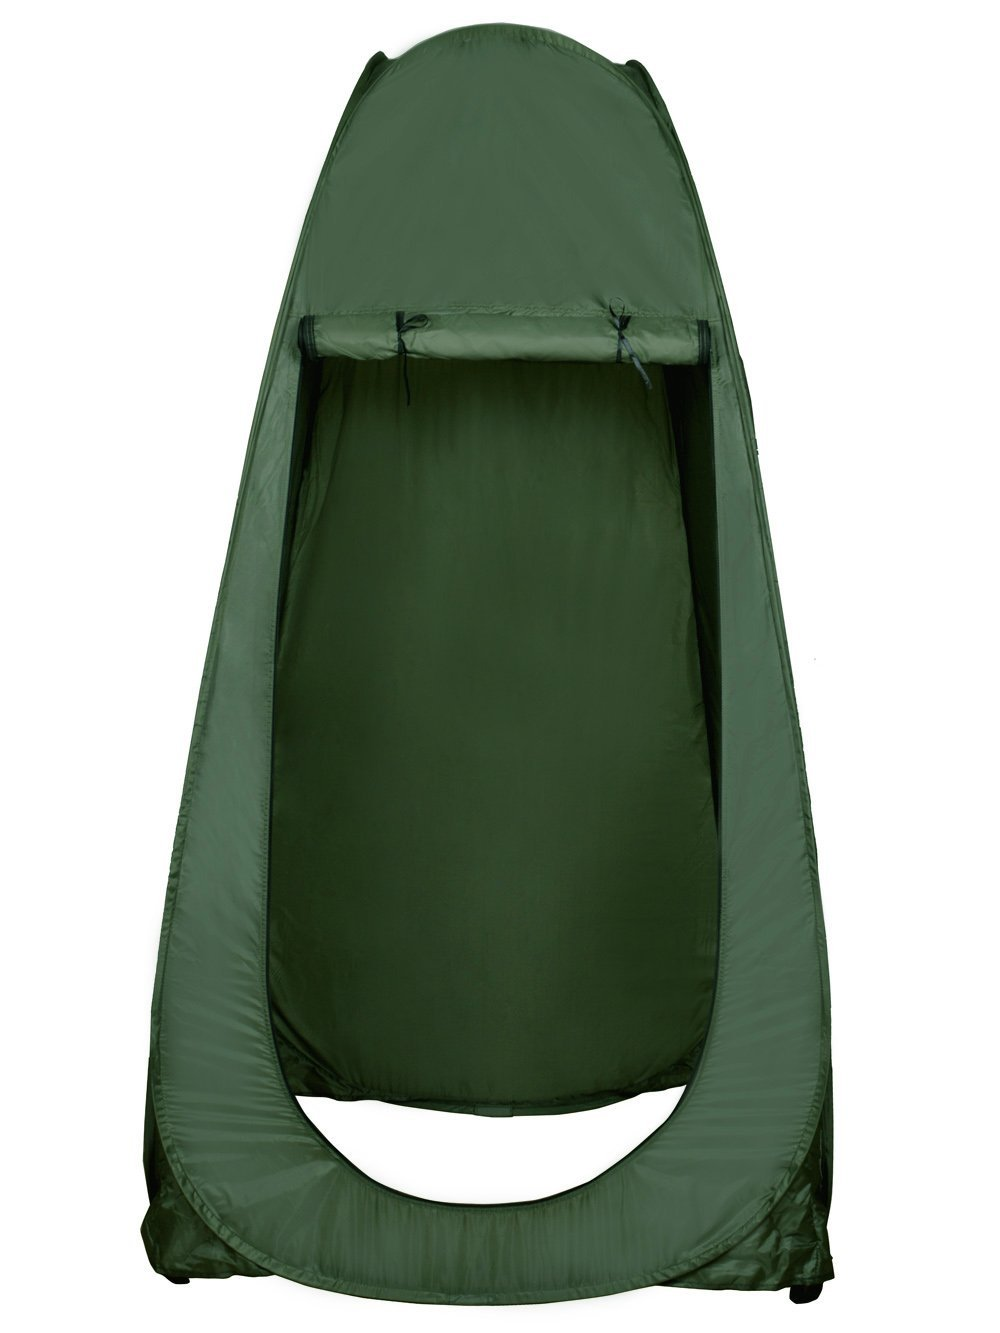 Pop Up Privacy Shelter : Danchel outdoor green pop up tent camping shower privacy